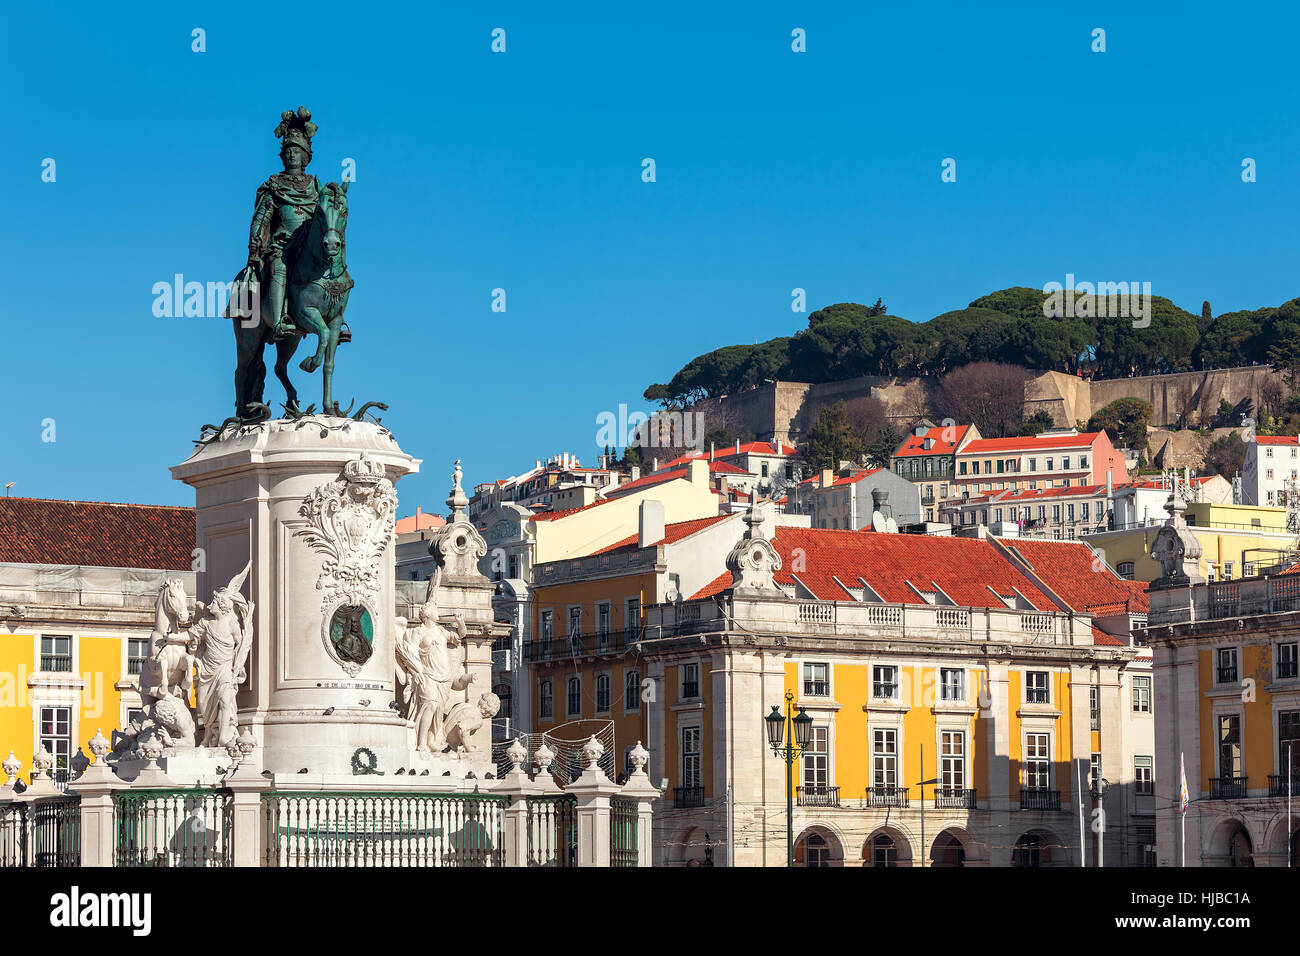 Bronze statue of King Jose on the horse as old colorful houses on background under blue sky at Commerce Square in - Stock Image